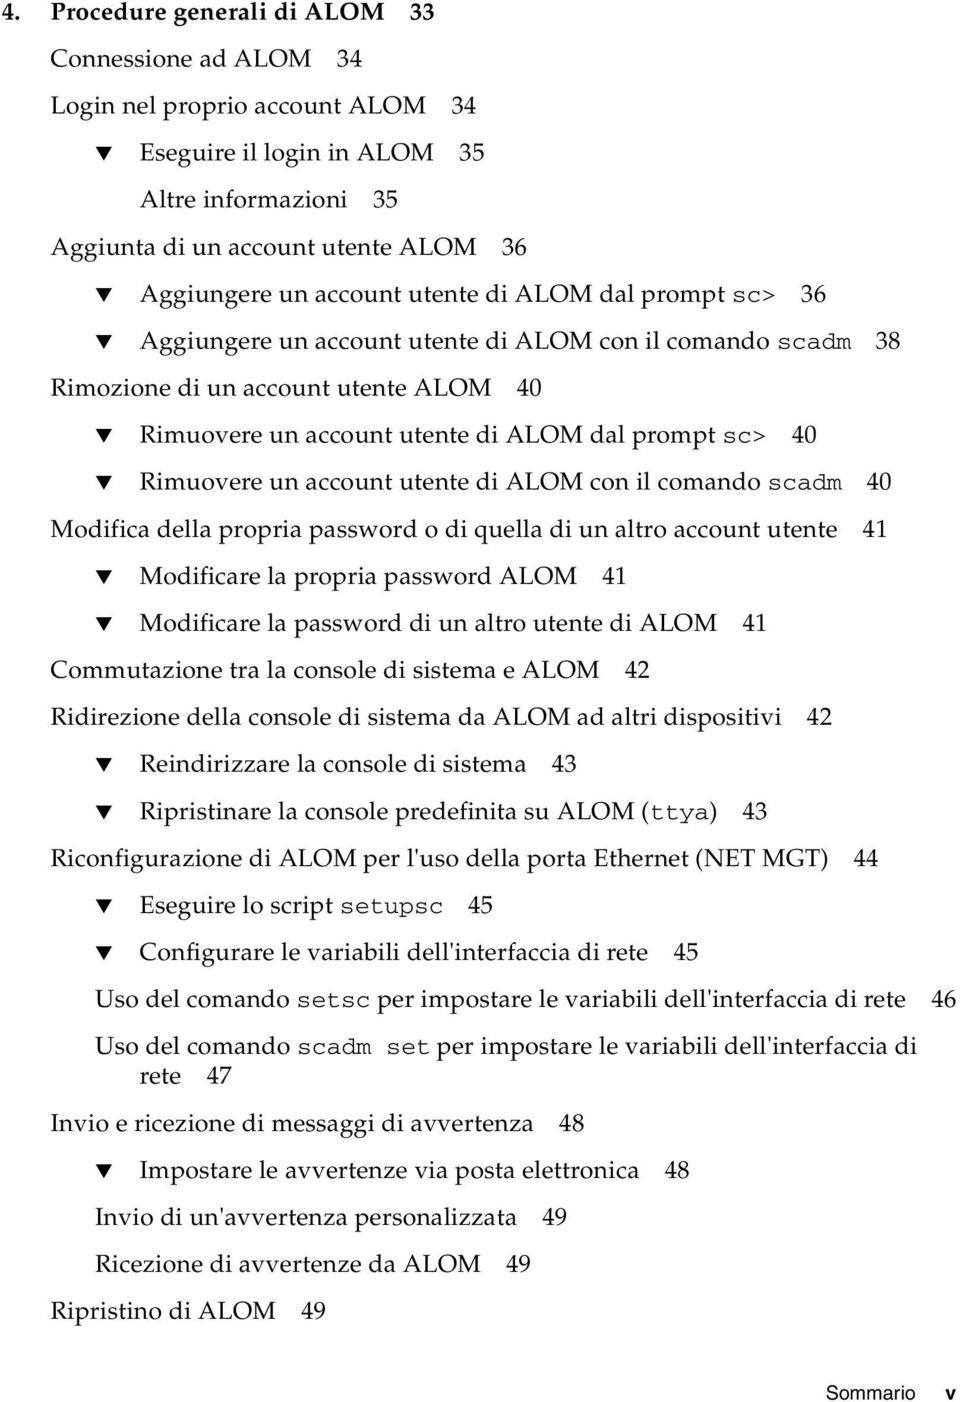 Rimuovere un account utente di ALOM con il comando scadm 40 Modifica della propria password o di quella di un altro account utente 41 Modificare la propria password ALOM 41 Modificare la password di